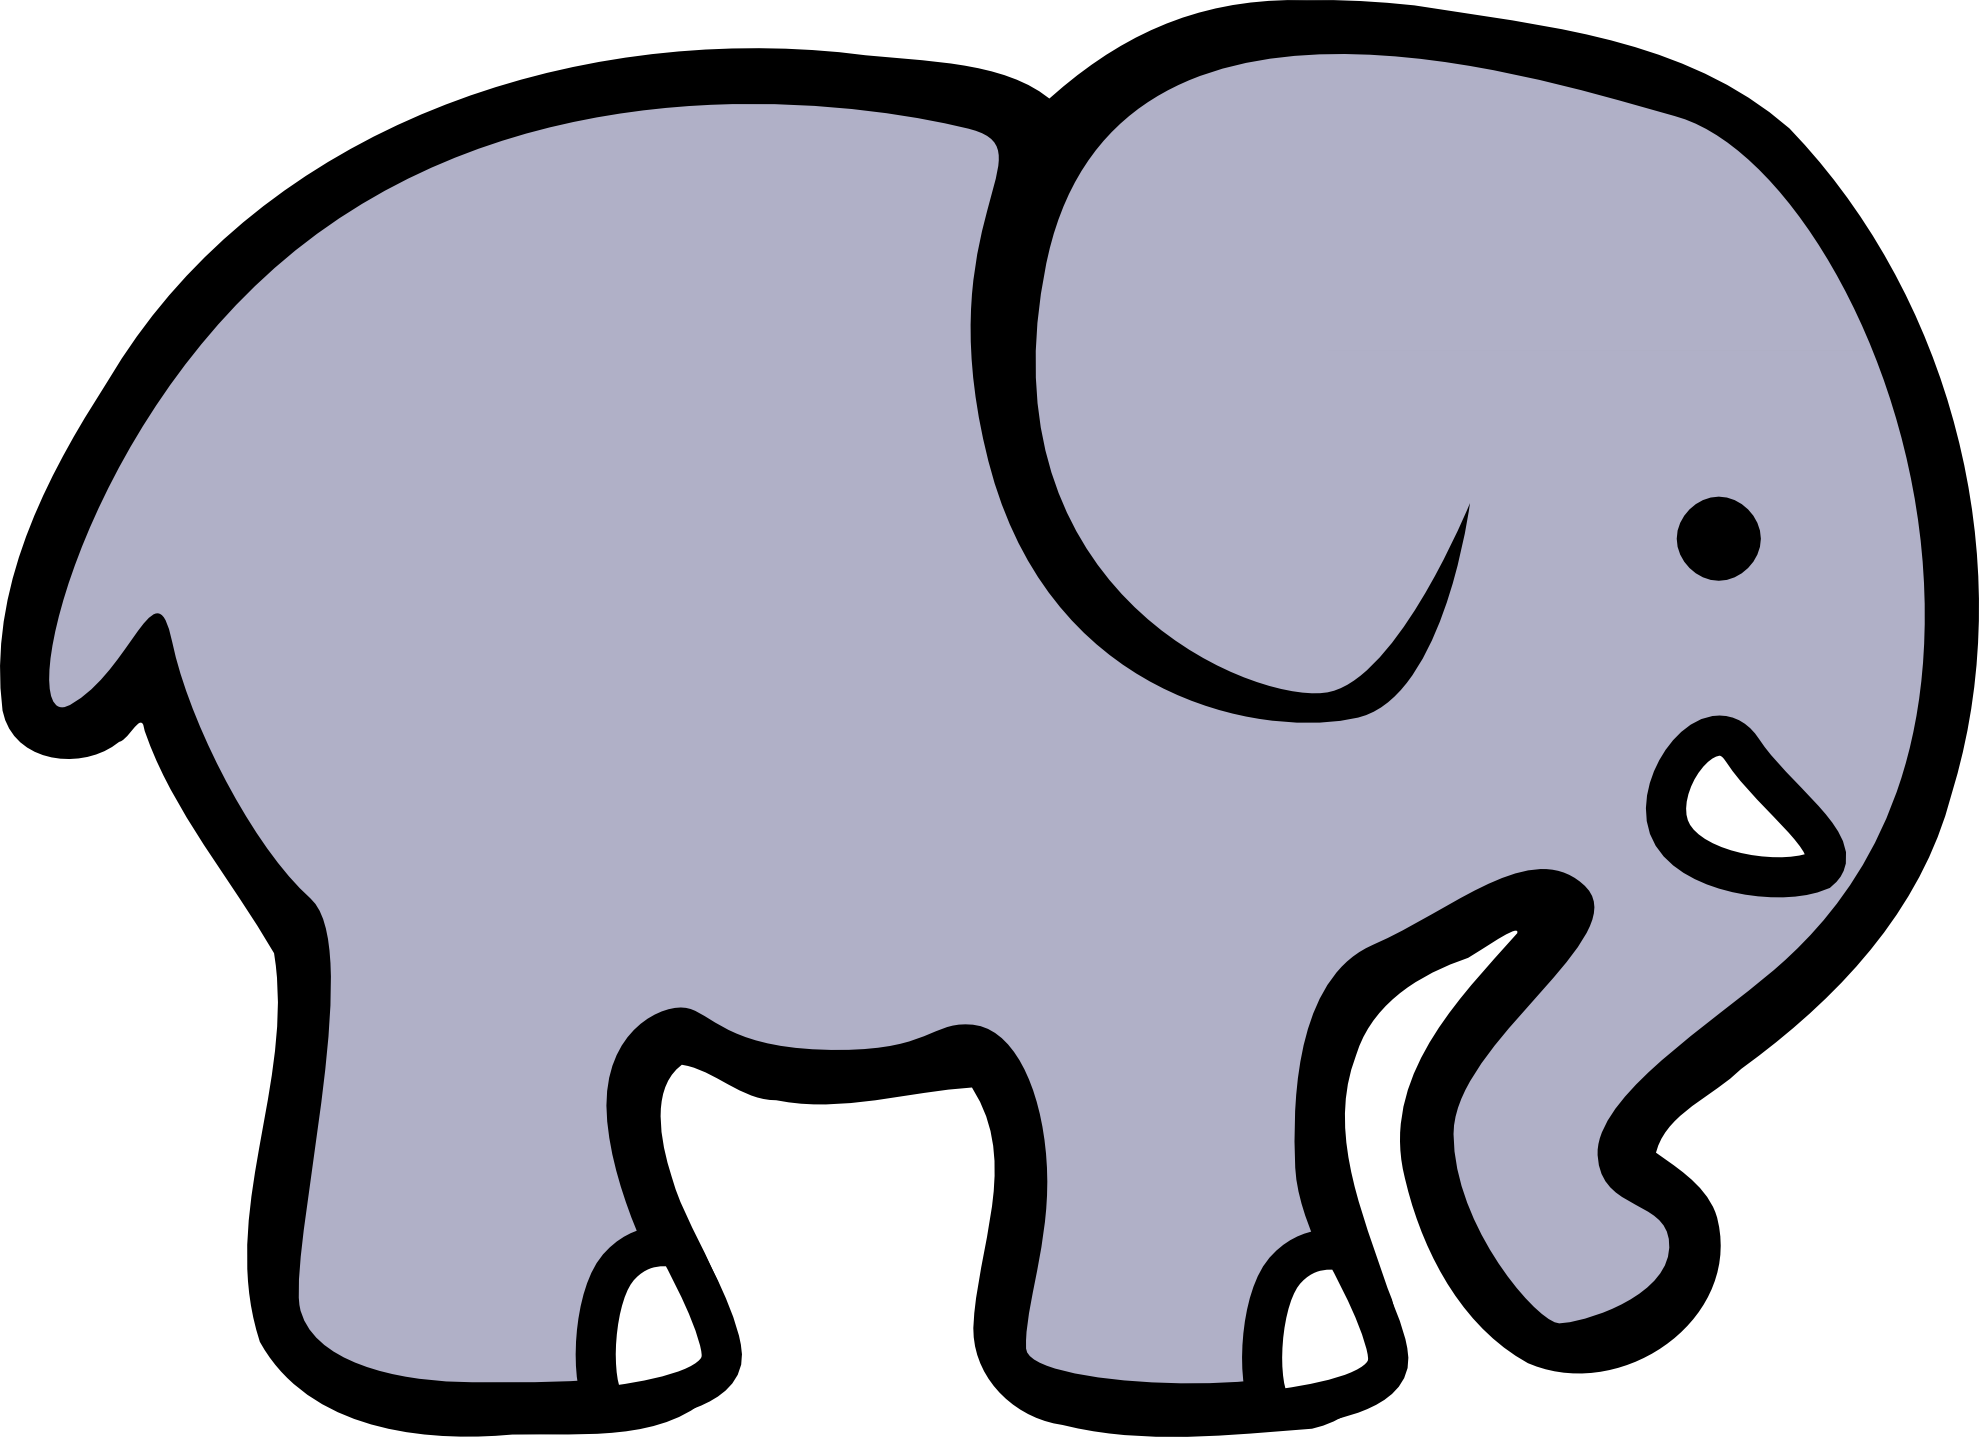 Elephant Clipart Black And White-elephant clipart black and white-3